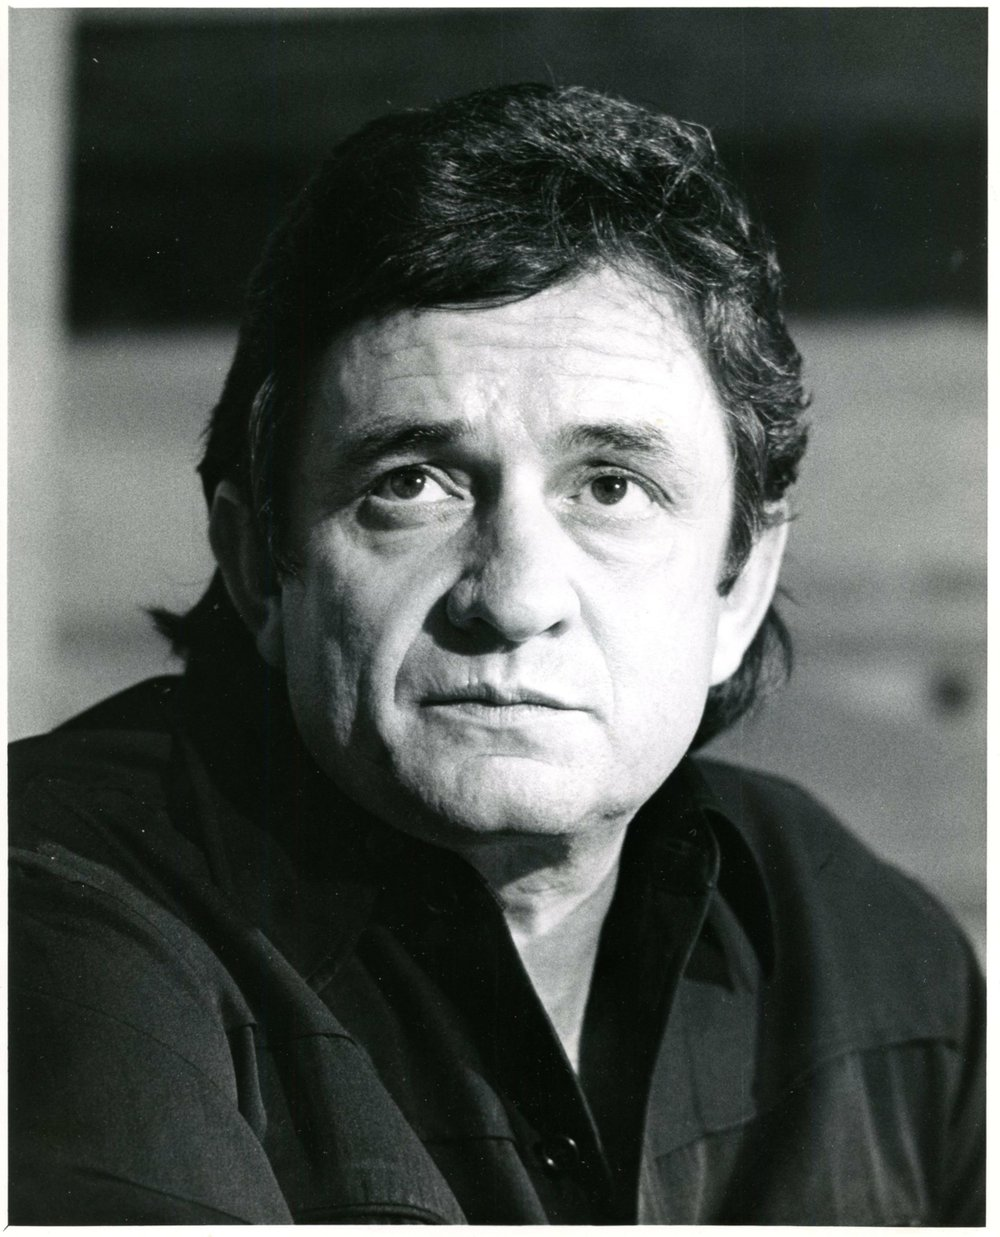 The annual Johnny Cash Heritage Festival celebrates all things Cash, seen here Oct 3, 1971. (Photo by Morris White)